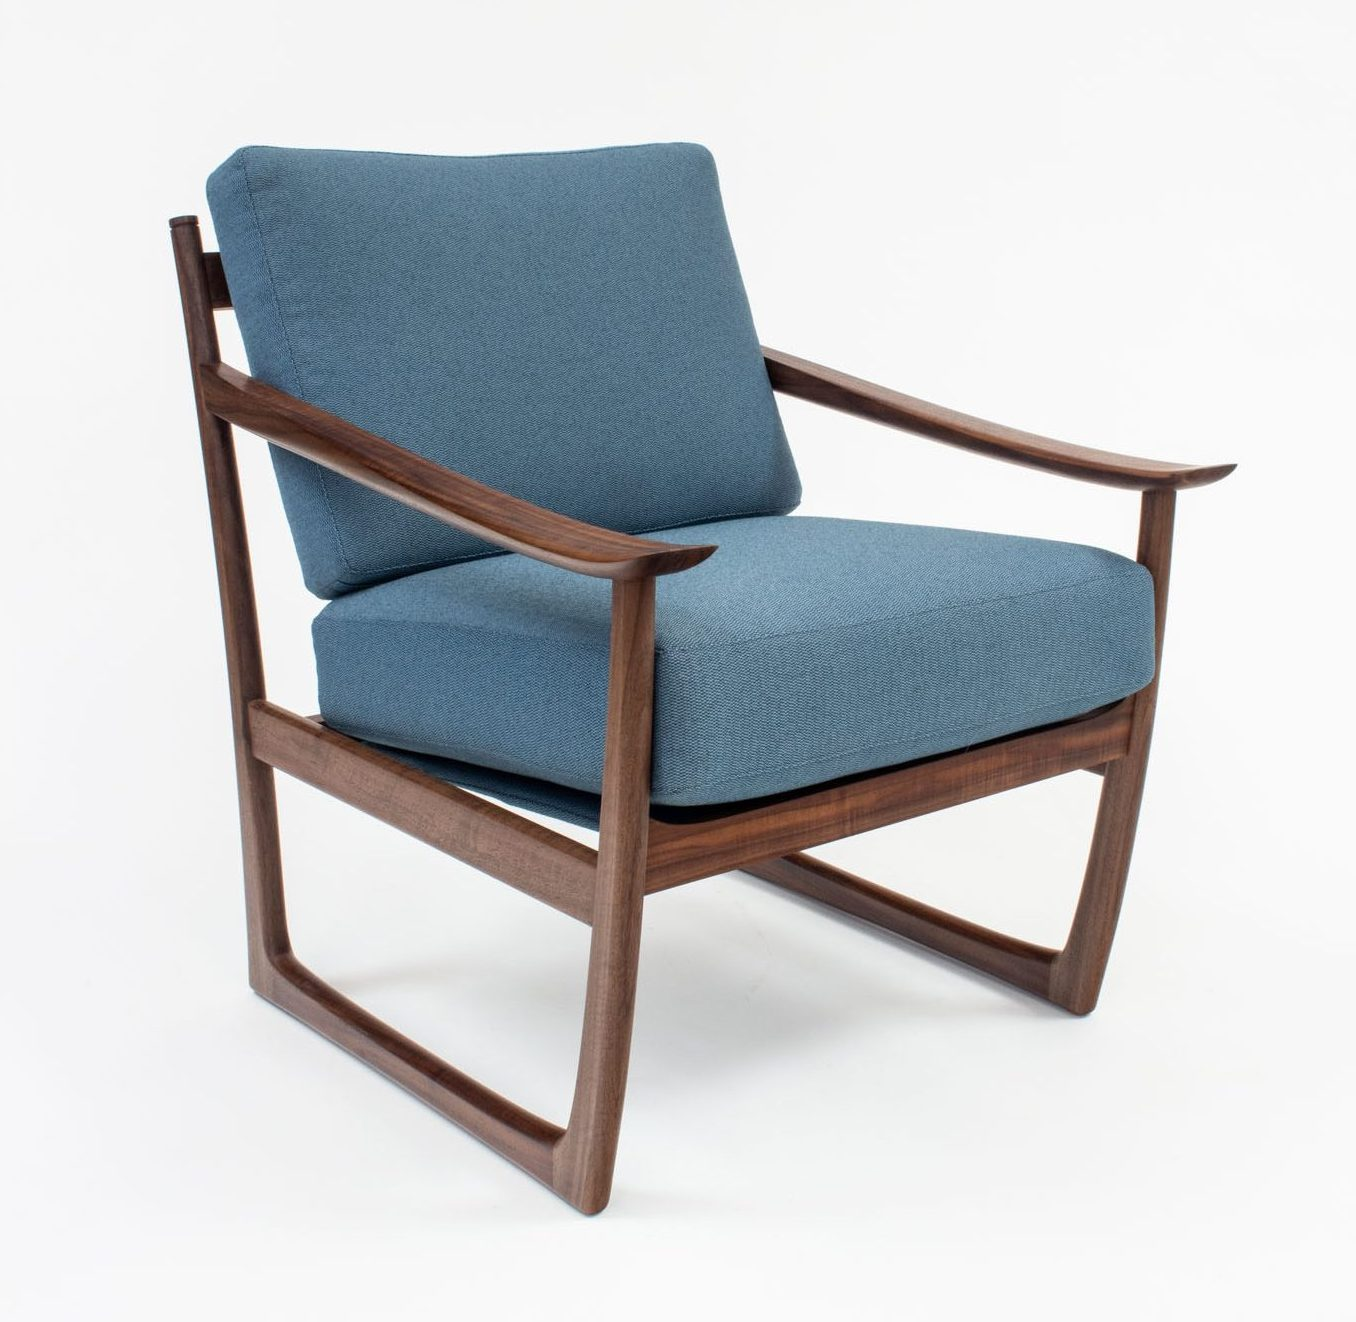 Lourens walnut chair